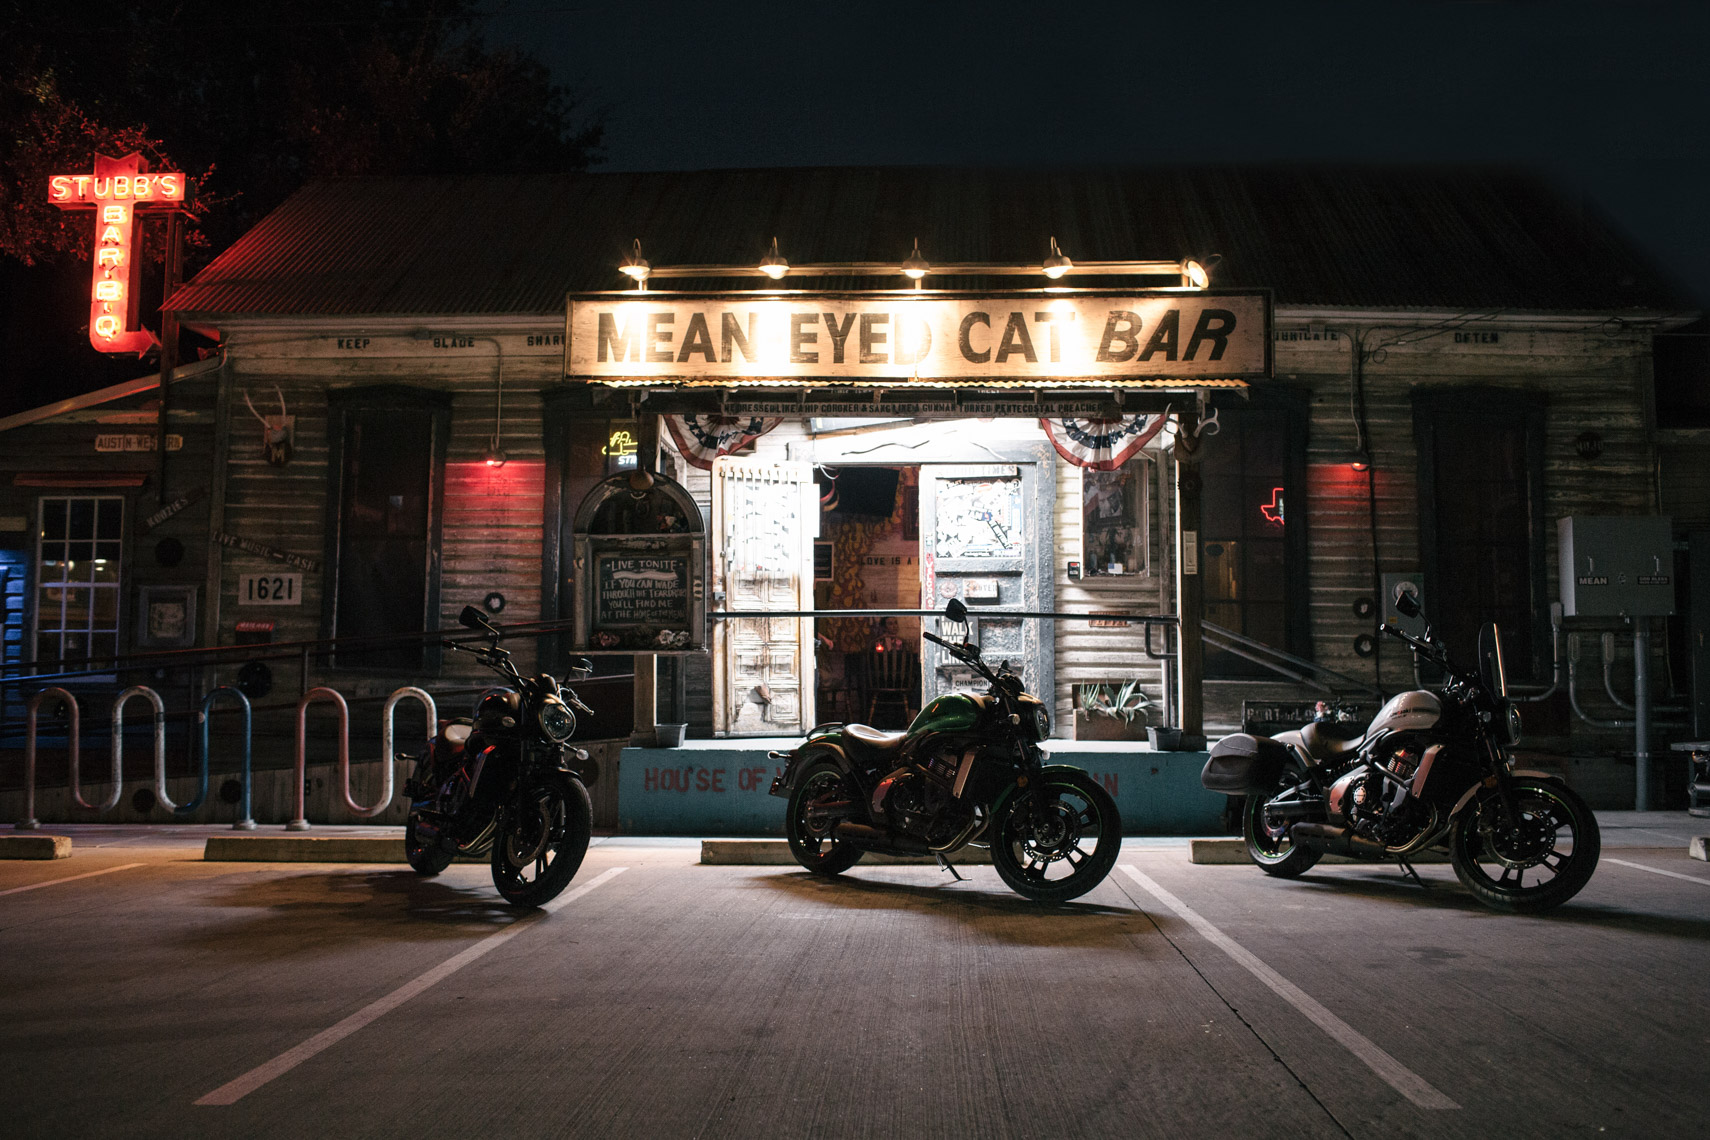 day_3_mean_eyed_cat_bar_exterior_0679-Edit